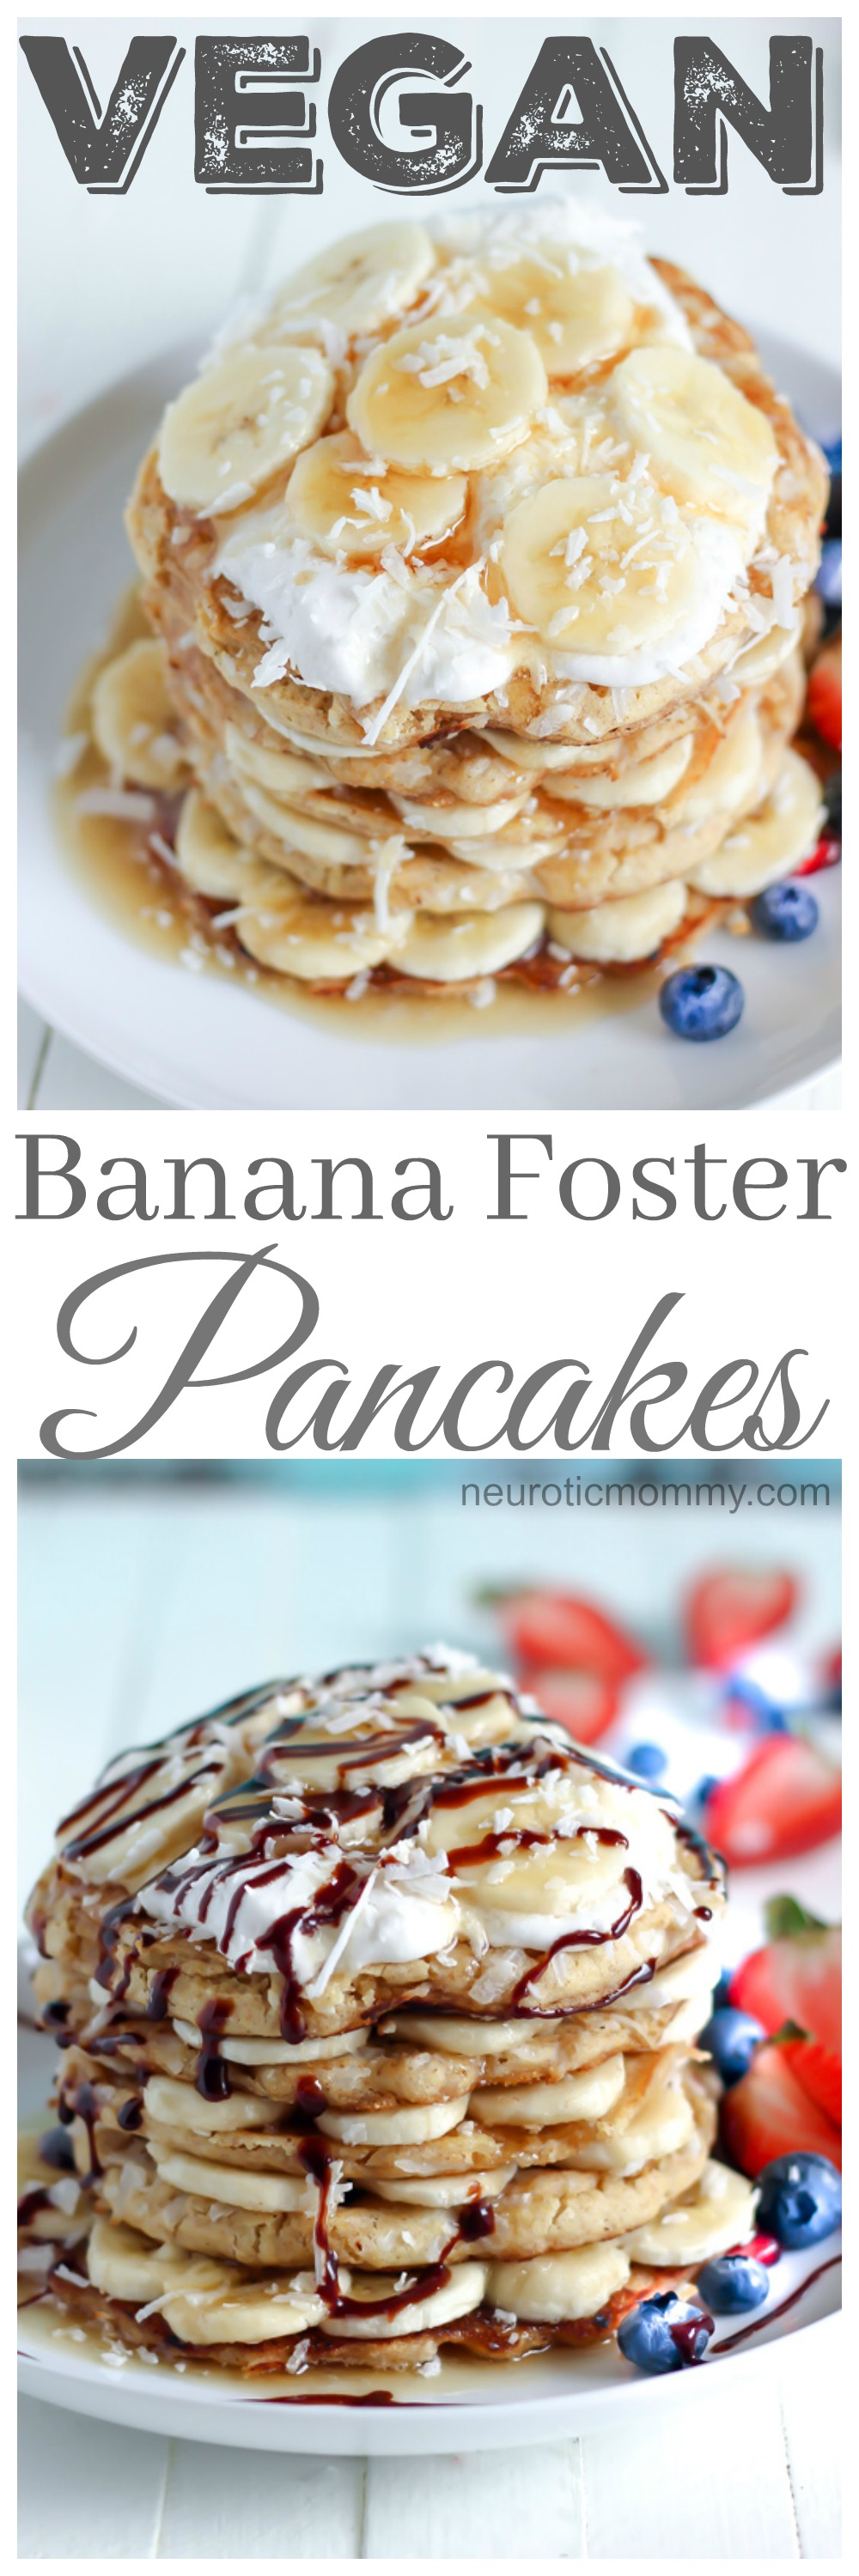 Vegan Banana Foster Pancakes - Wake up Easter morning to a delicious stack loaded with goodness. NeuroticMommy.com #vegan #easter #breakfast